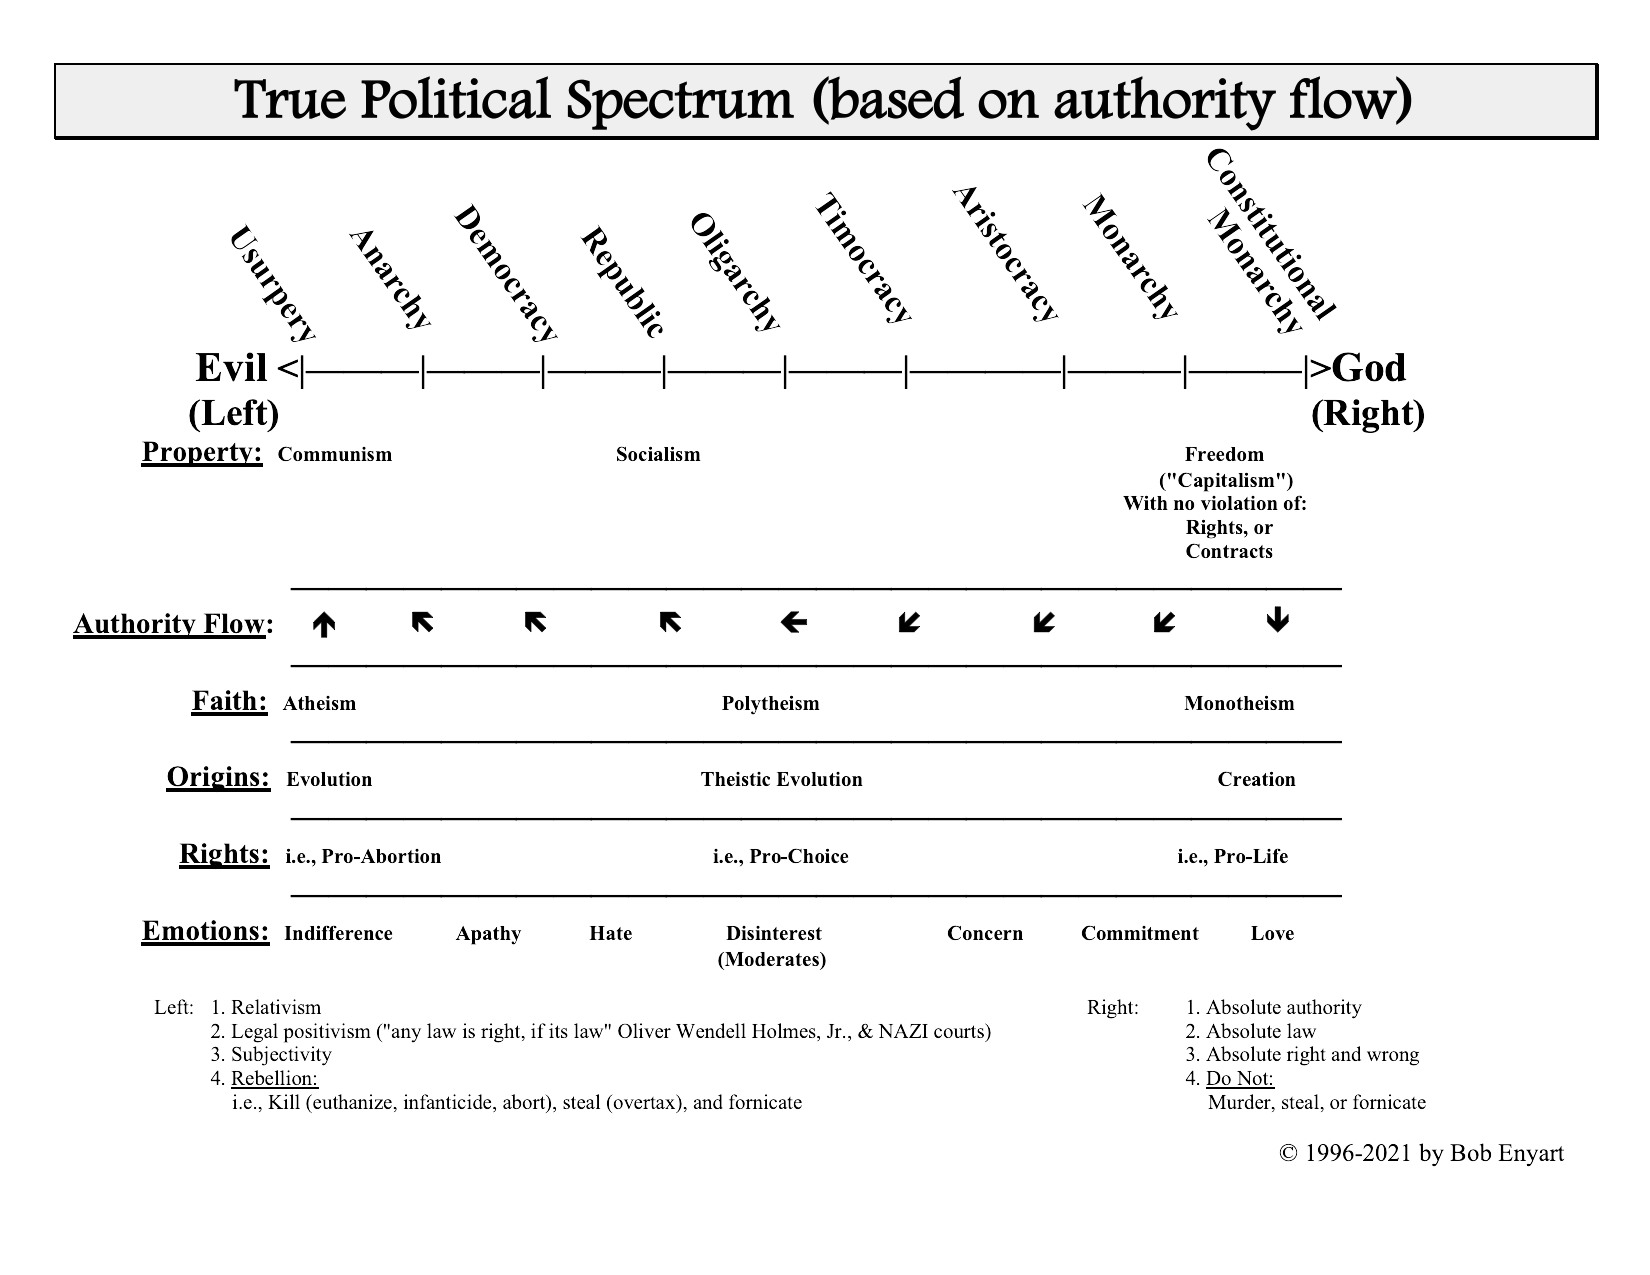 Political Spectrum: The correct view based on the flow of authority